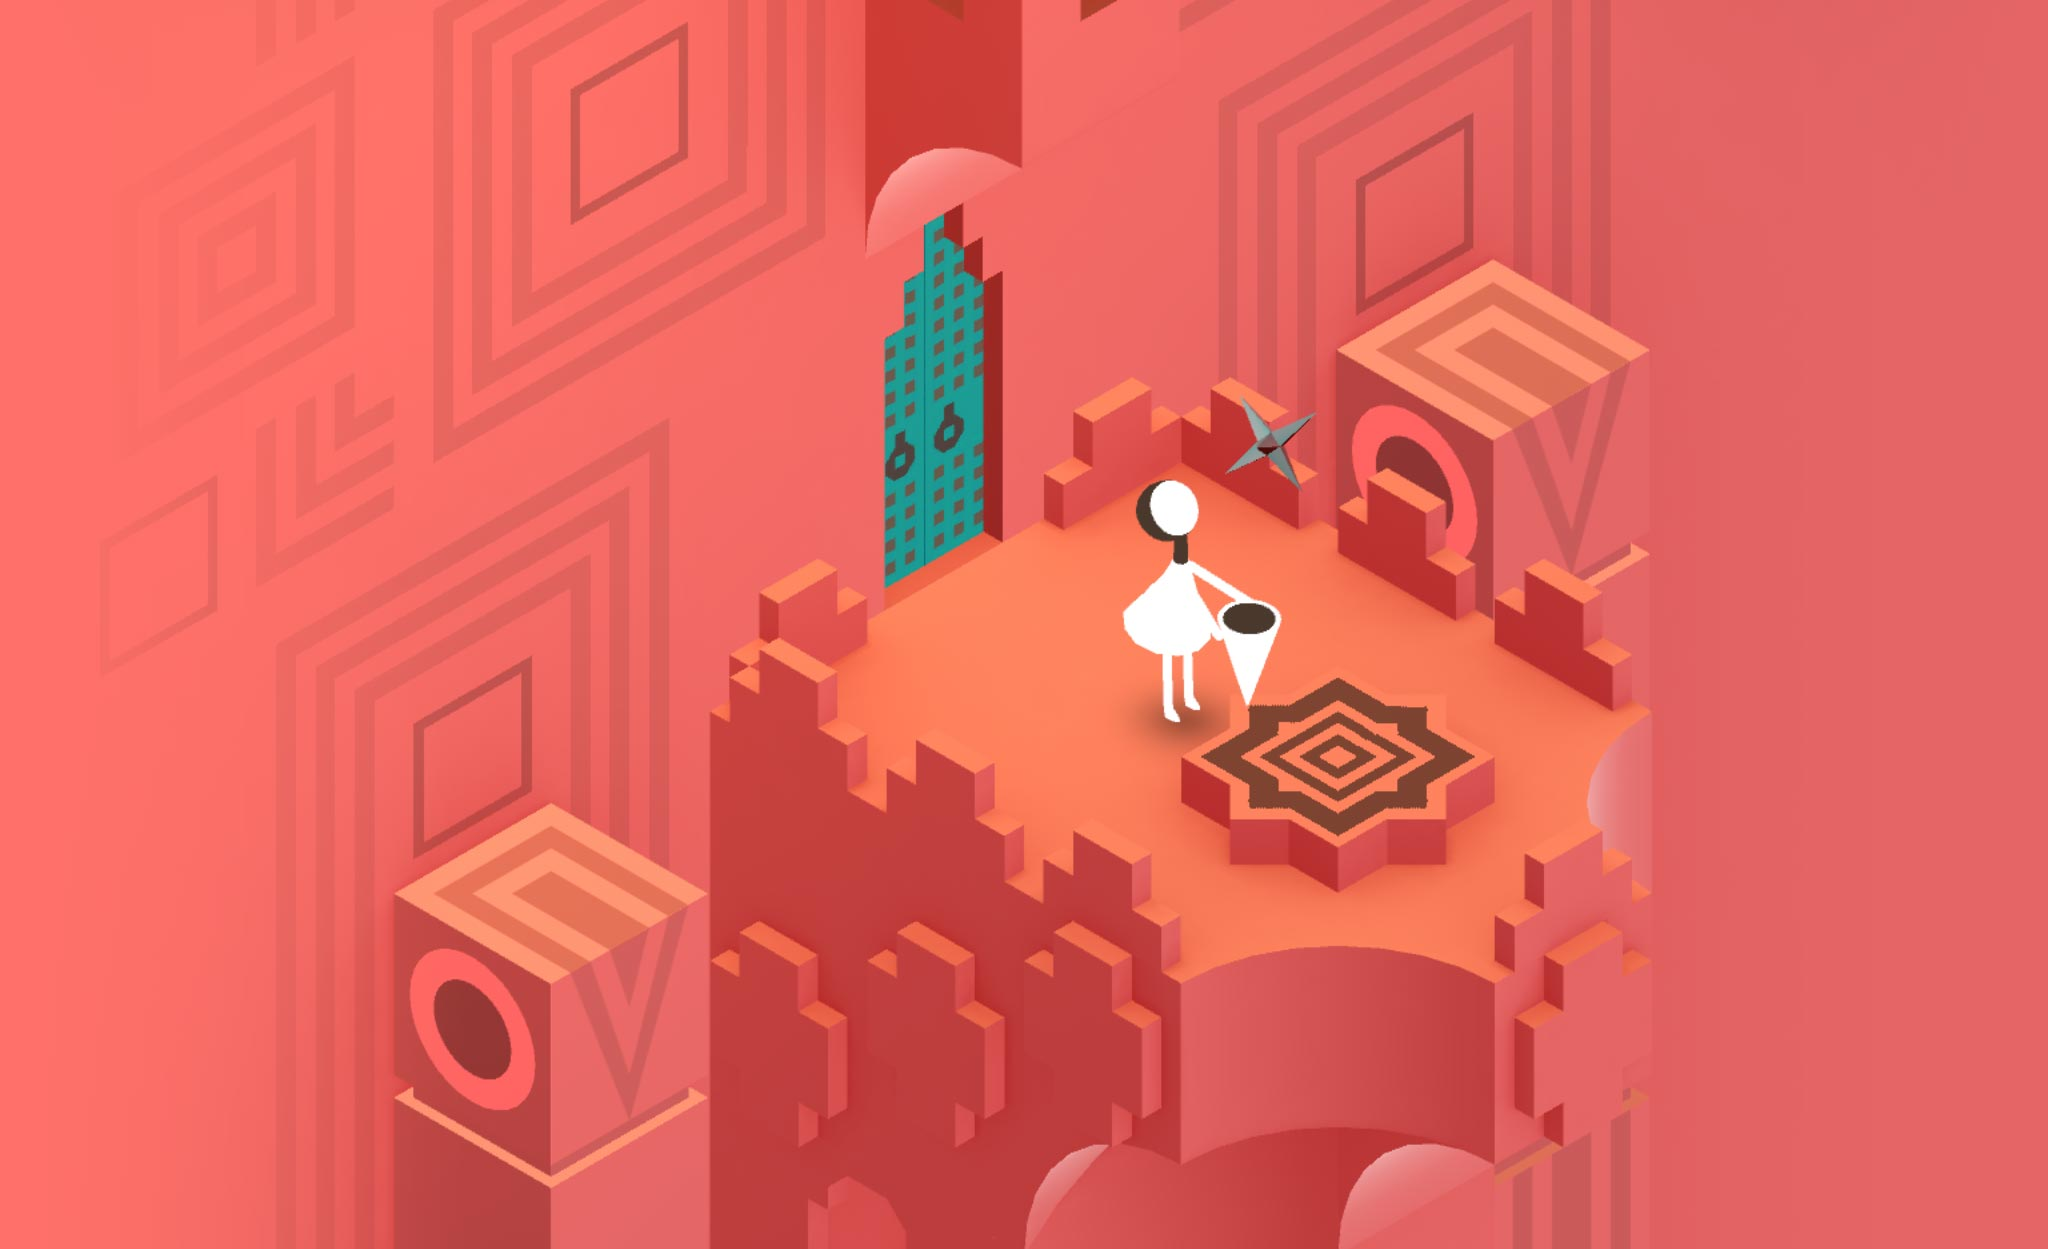 Monument Valley 2: an iOS game from ustwo games